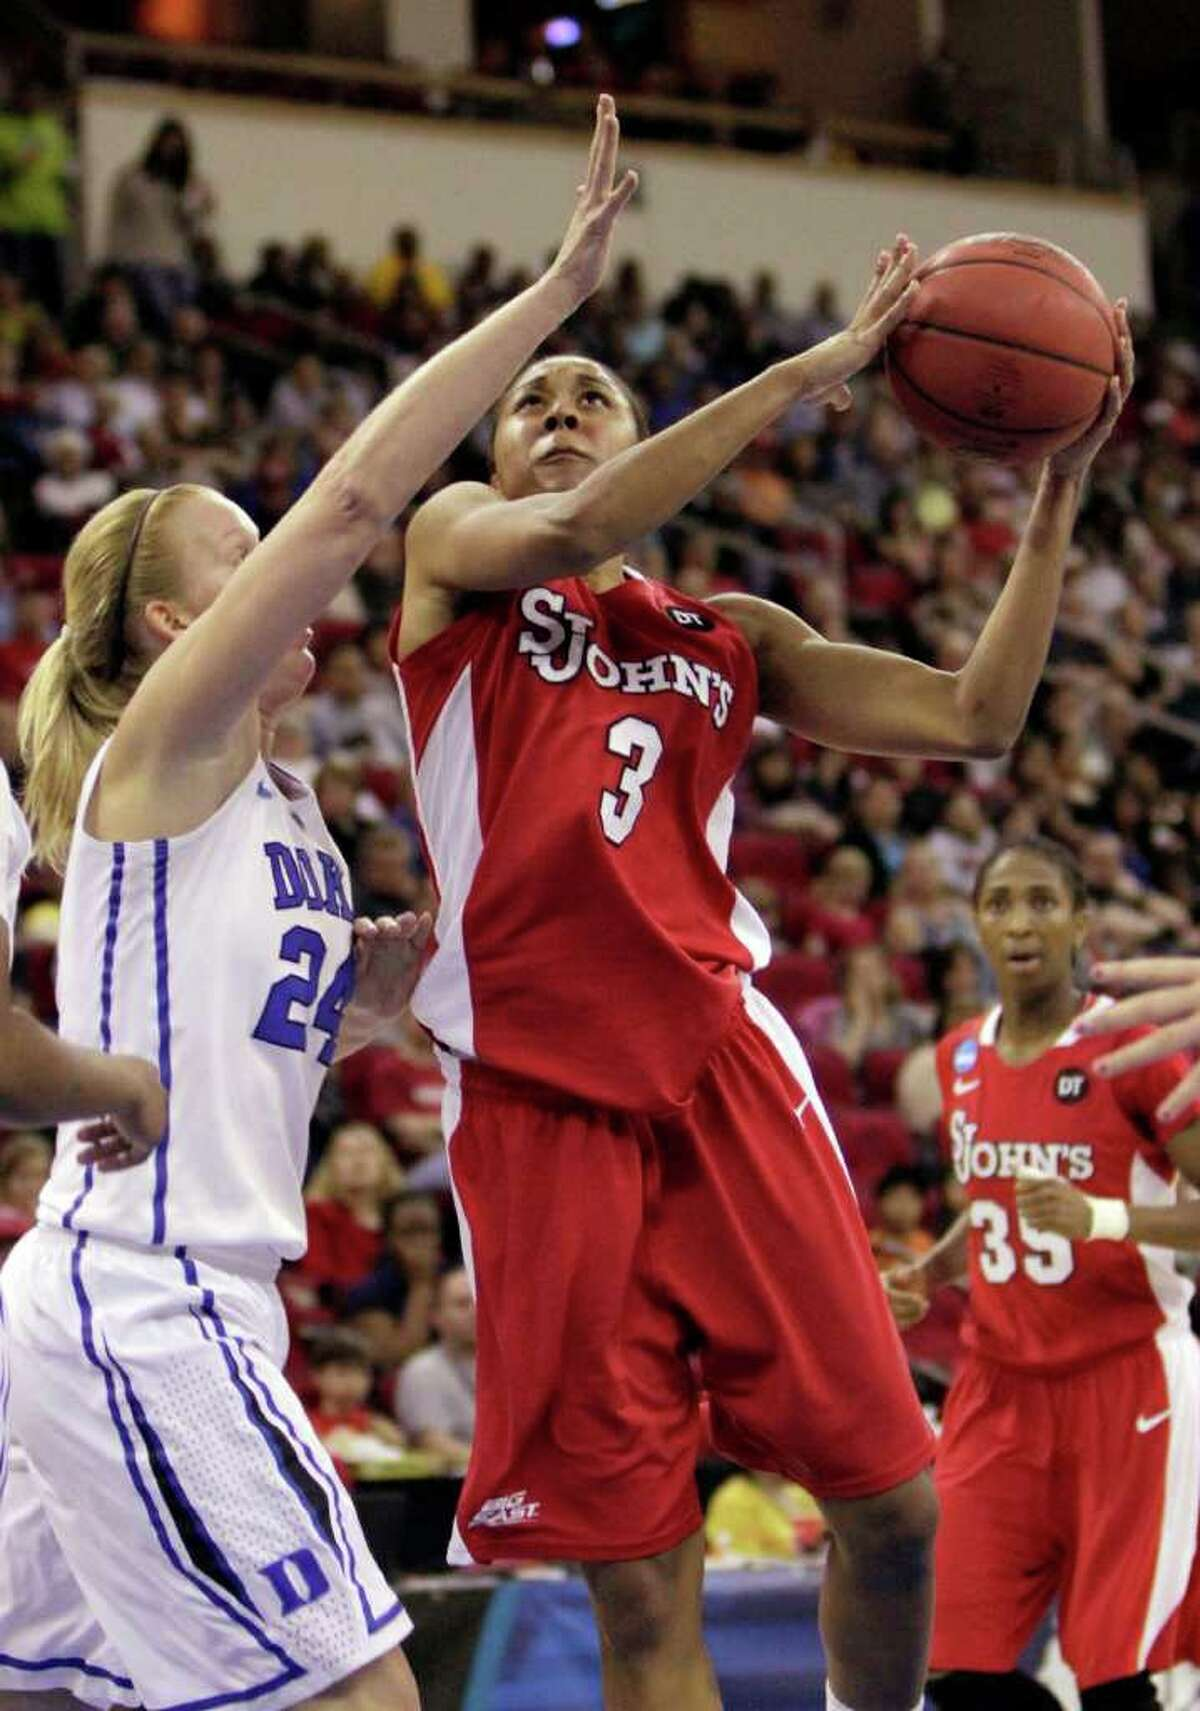 St. John's Da'Shena Stevens, right, drives to the basket against Duke's Kathleen Scheer during the second half of an NCAA women's tournament regional semifinal college basketball game, Saturday, March 24, 2012, in Fresno, Calif. Duke beat St. John's 74-47 and will play the winner of the game between South Carolina and Stanford.(AP Photo/Rich Pedroncelli)